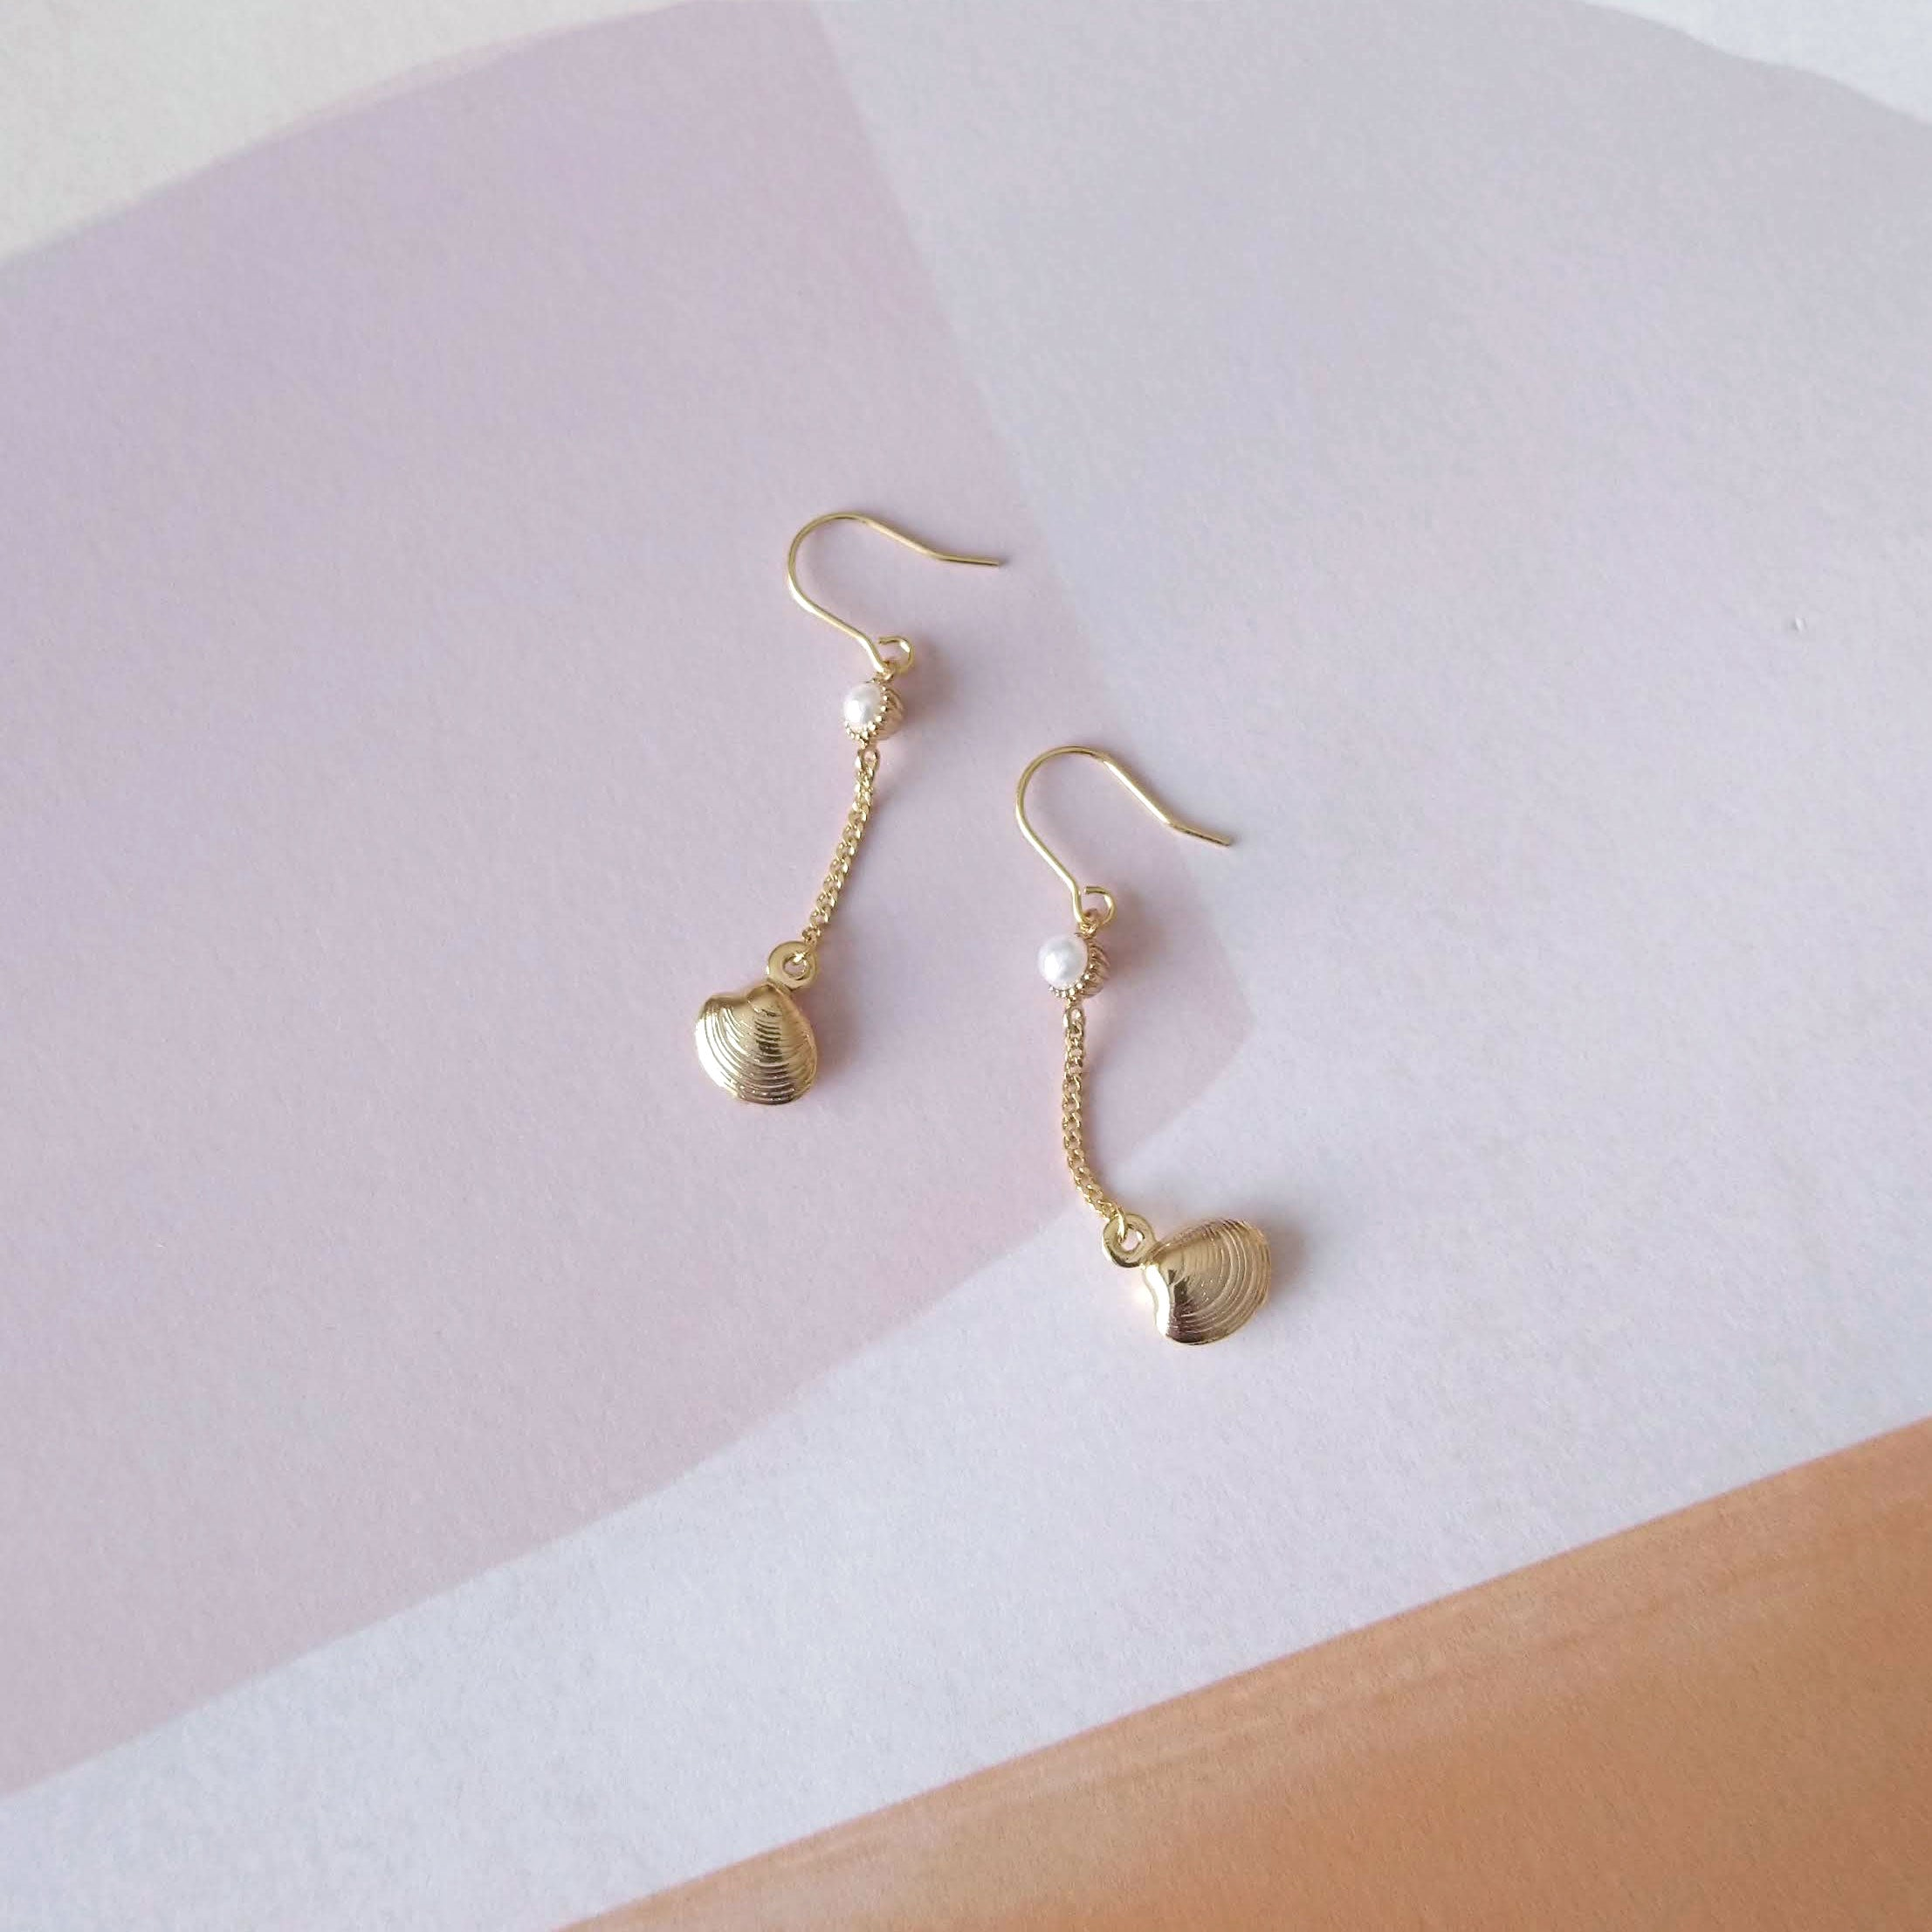 boucles d'oreilles perle coquillage